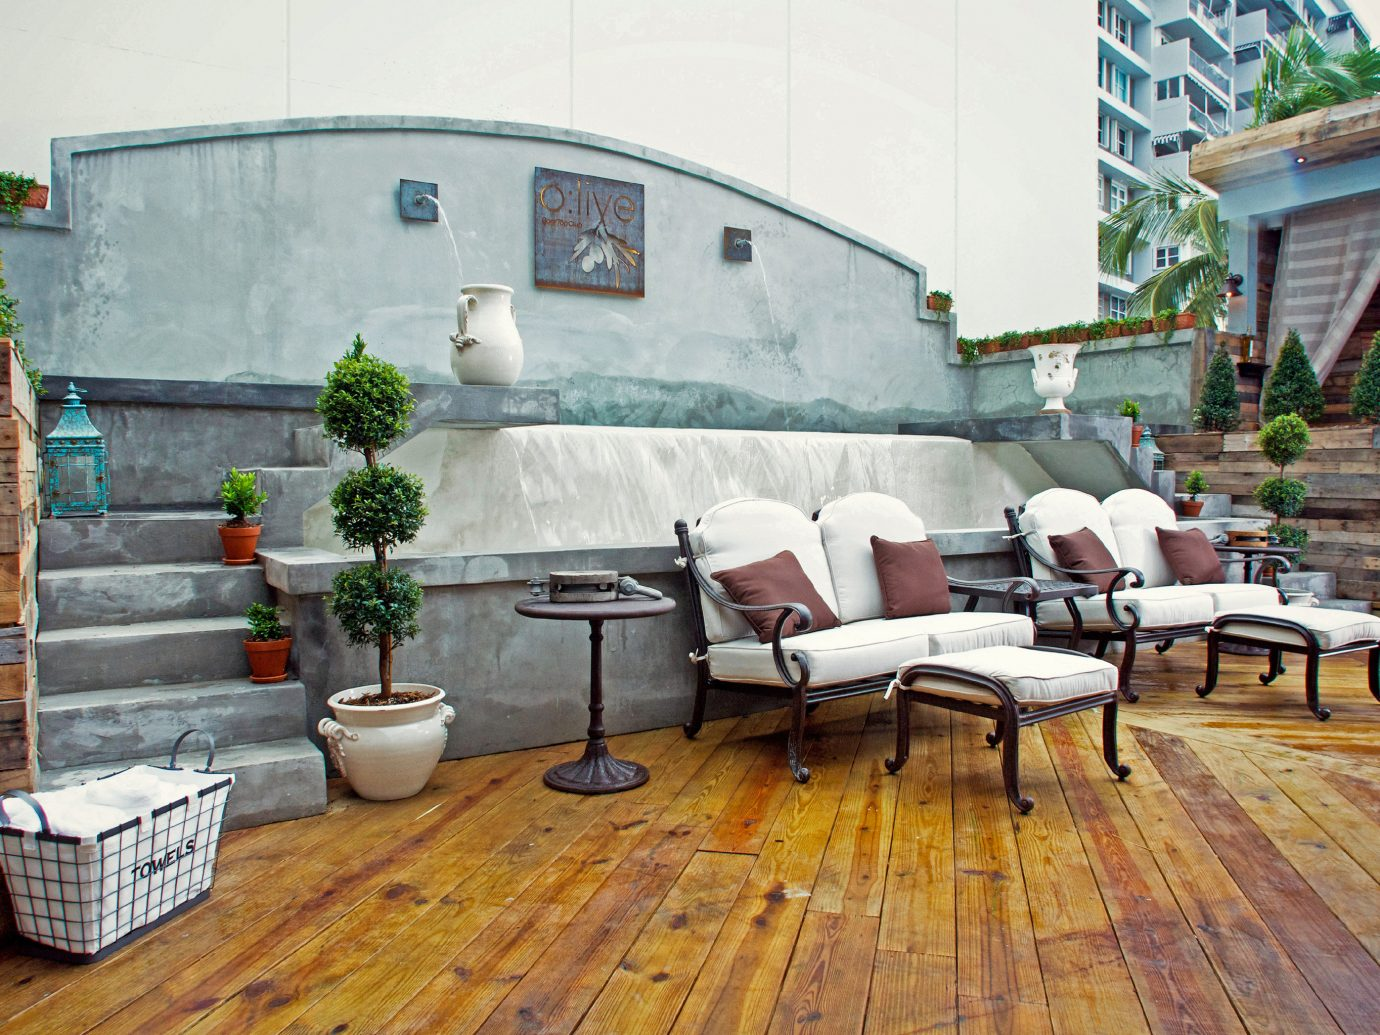 Trip Ideas floor property building home room wall house estate cottage living room backyard wood outdoor structure flooring interior design porch furniture stone